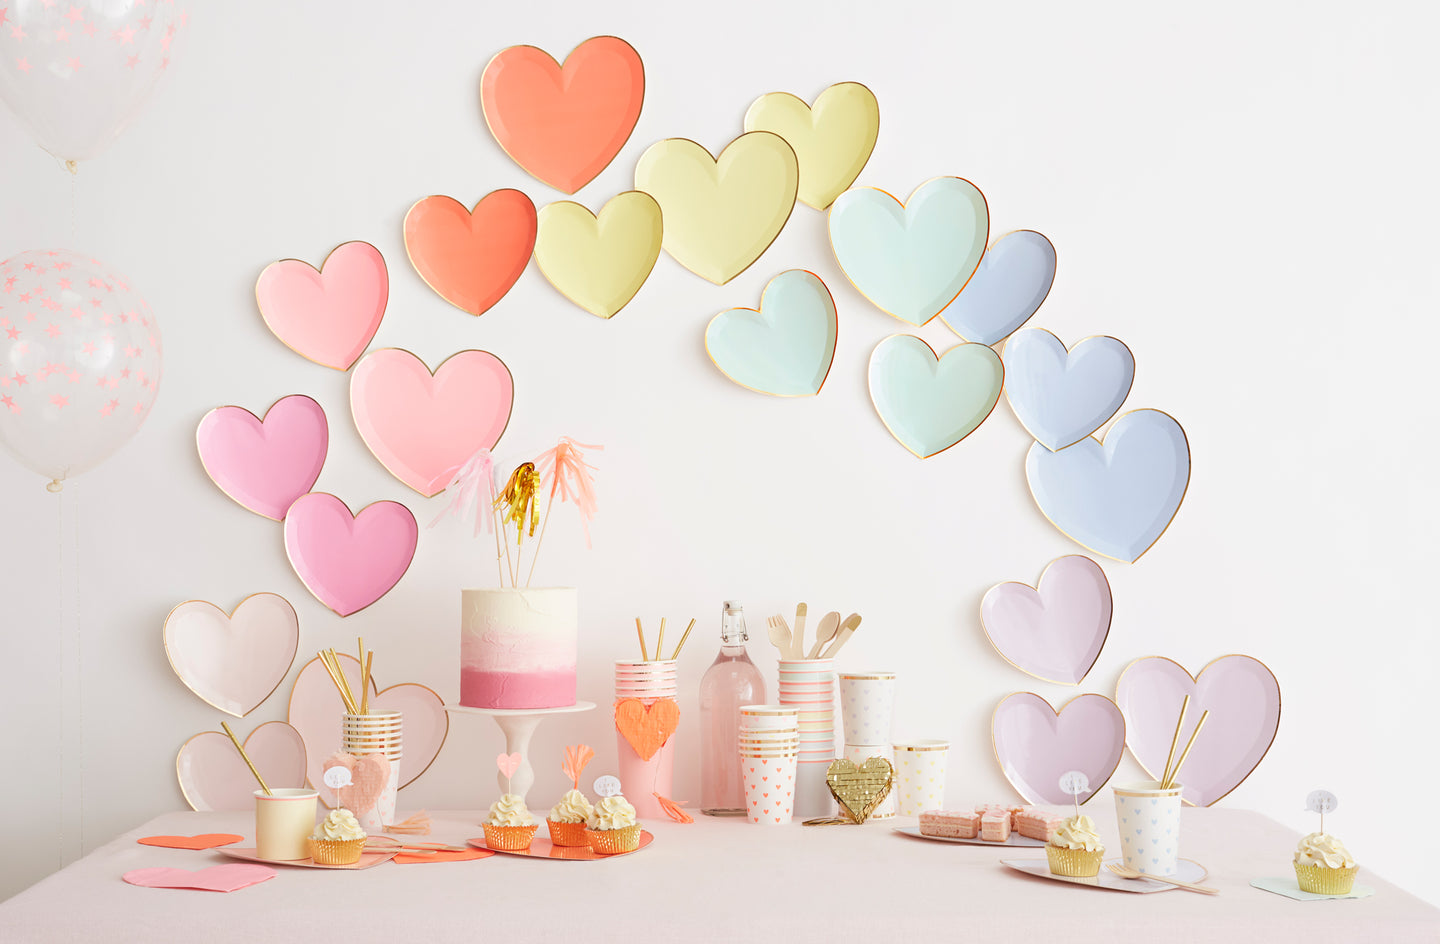 Valentine's Party Supplies + Decorations